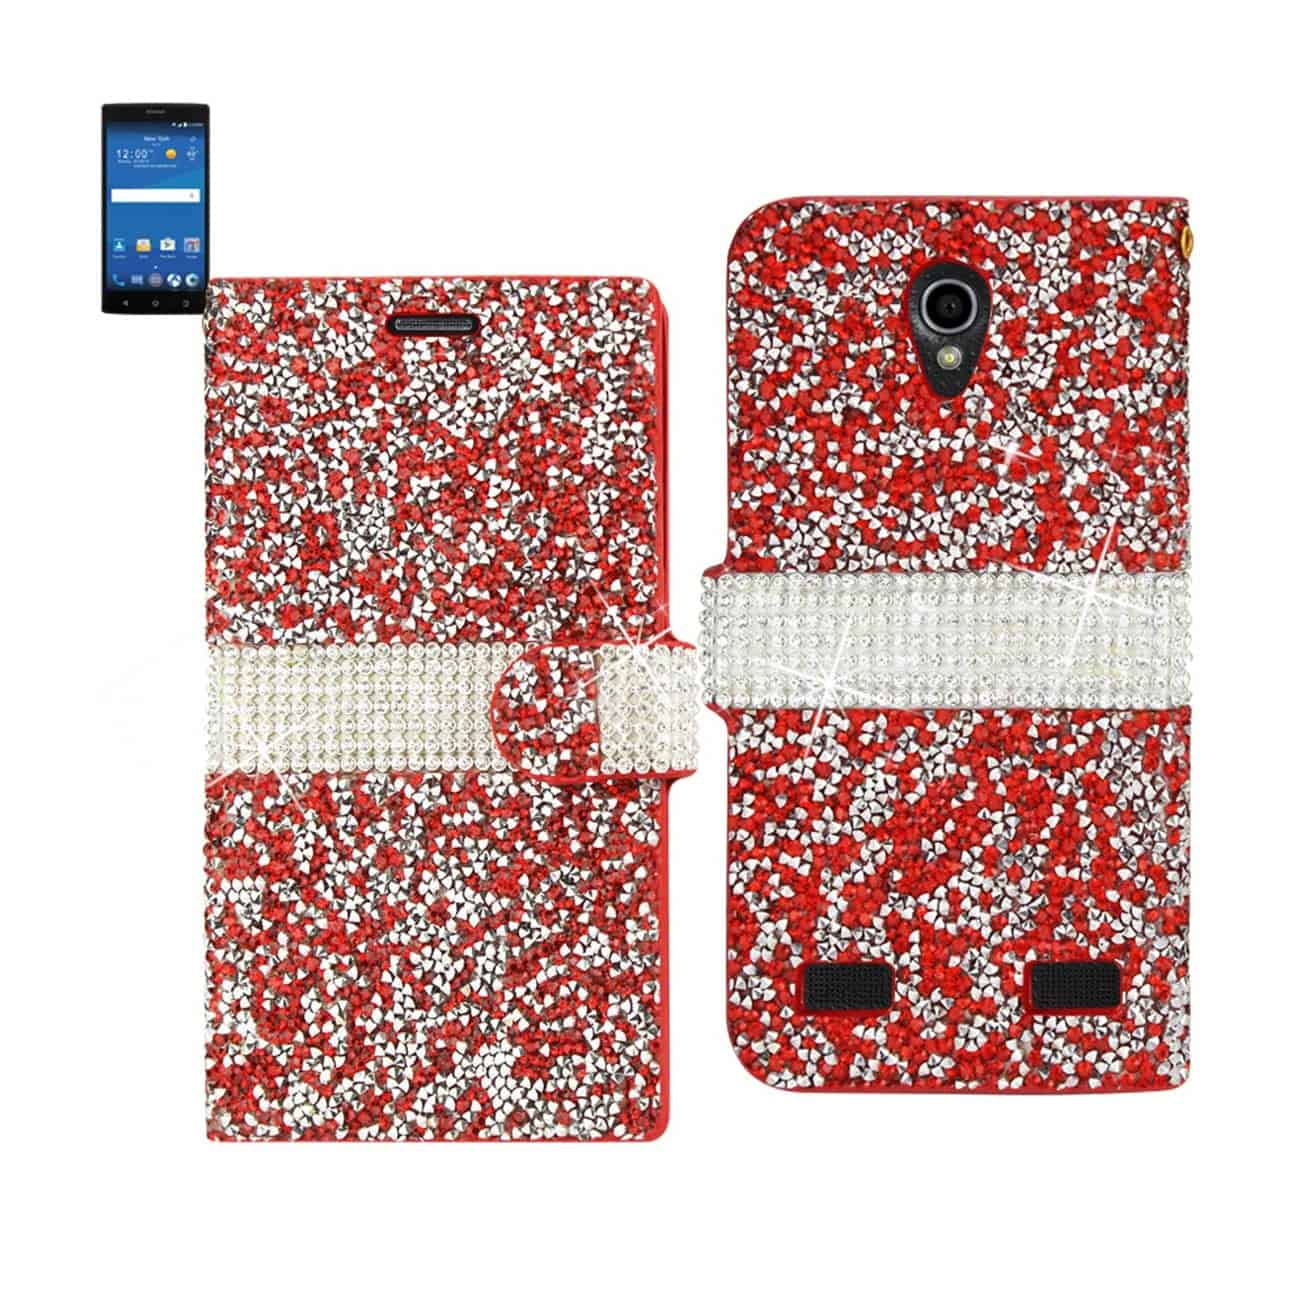 ZTE ZMAX 2 JEWELRY RHINESTONE WALLET CASE IN RED